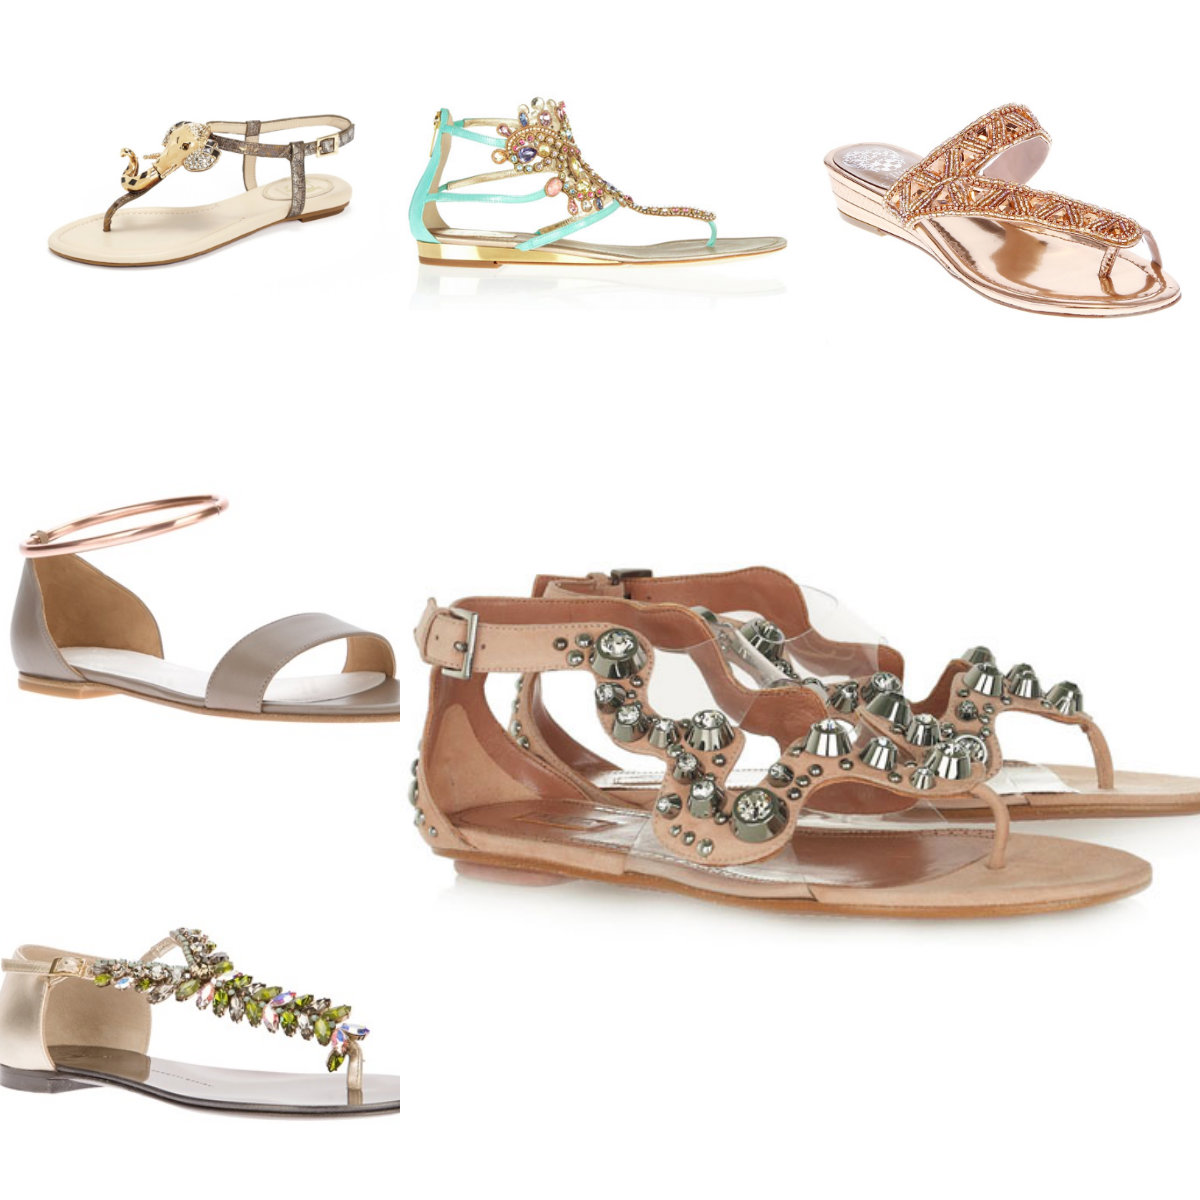 gem sandal collage